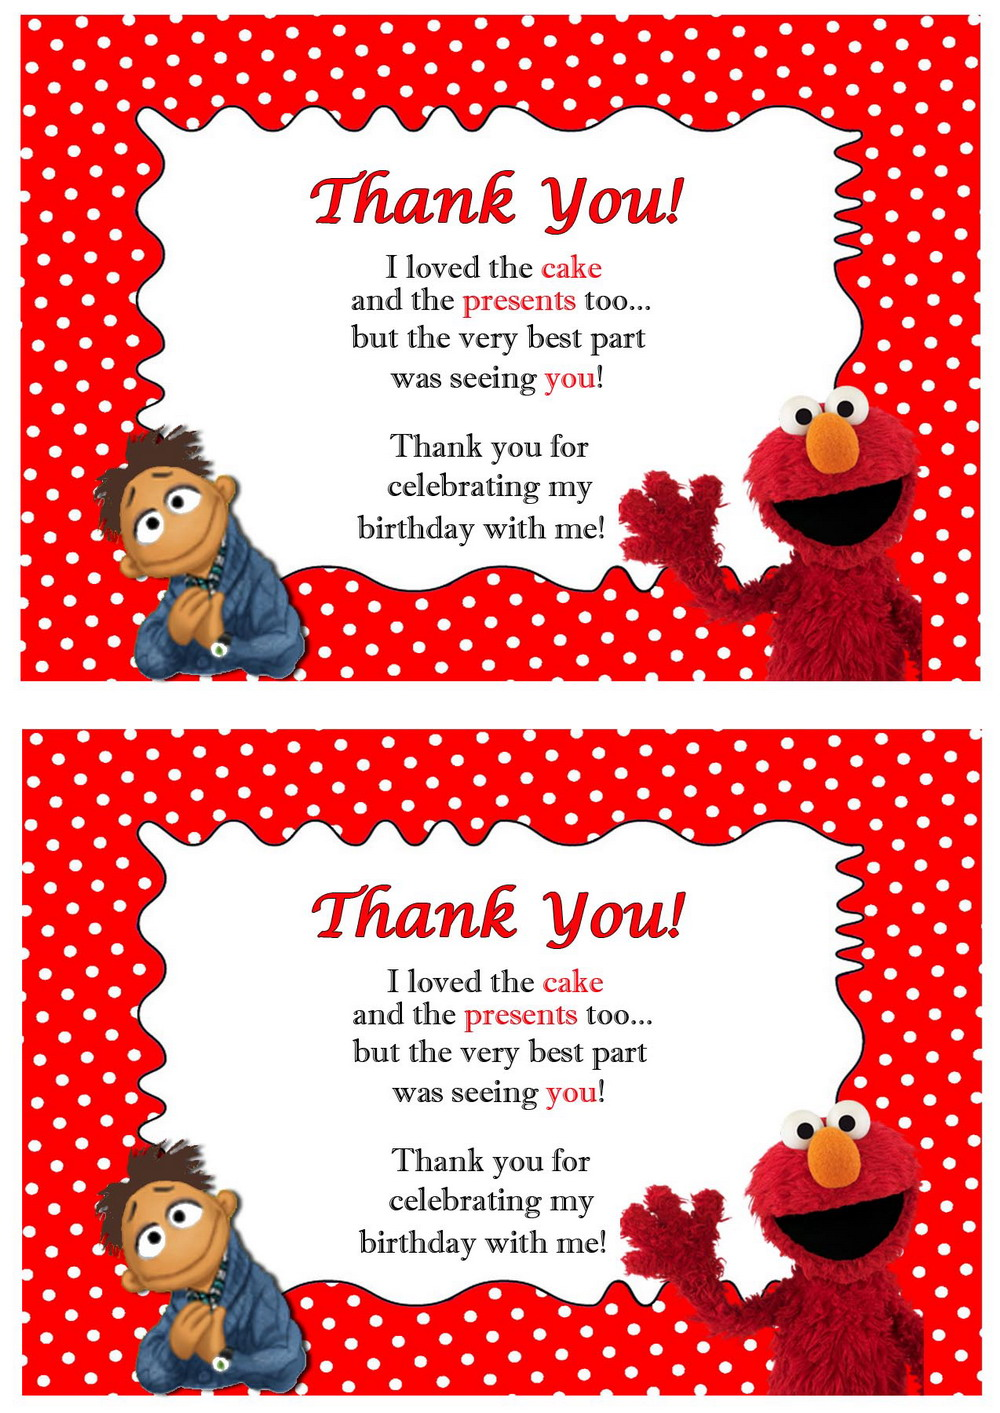 muppets thank you cards